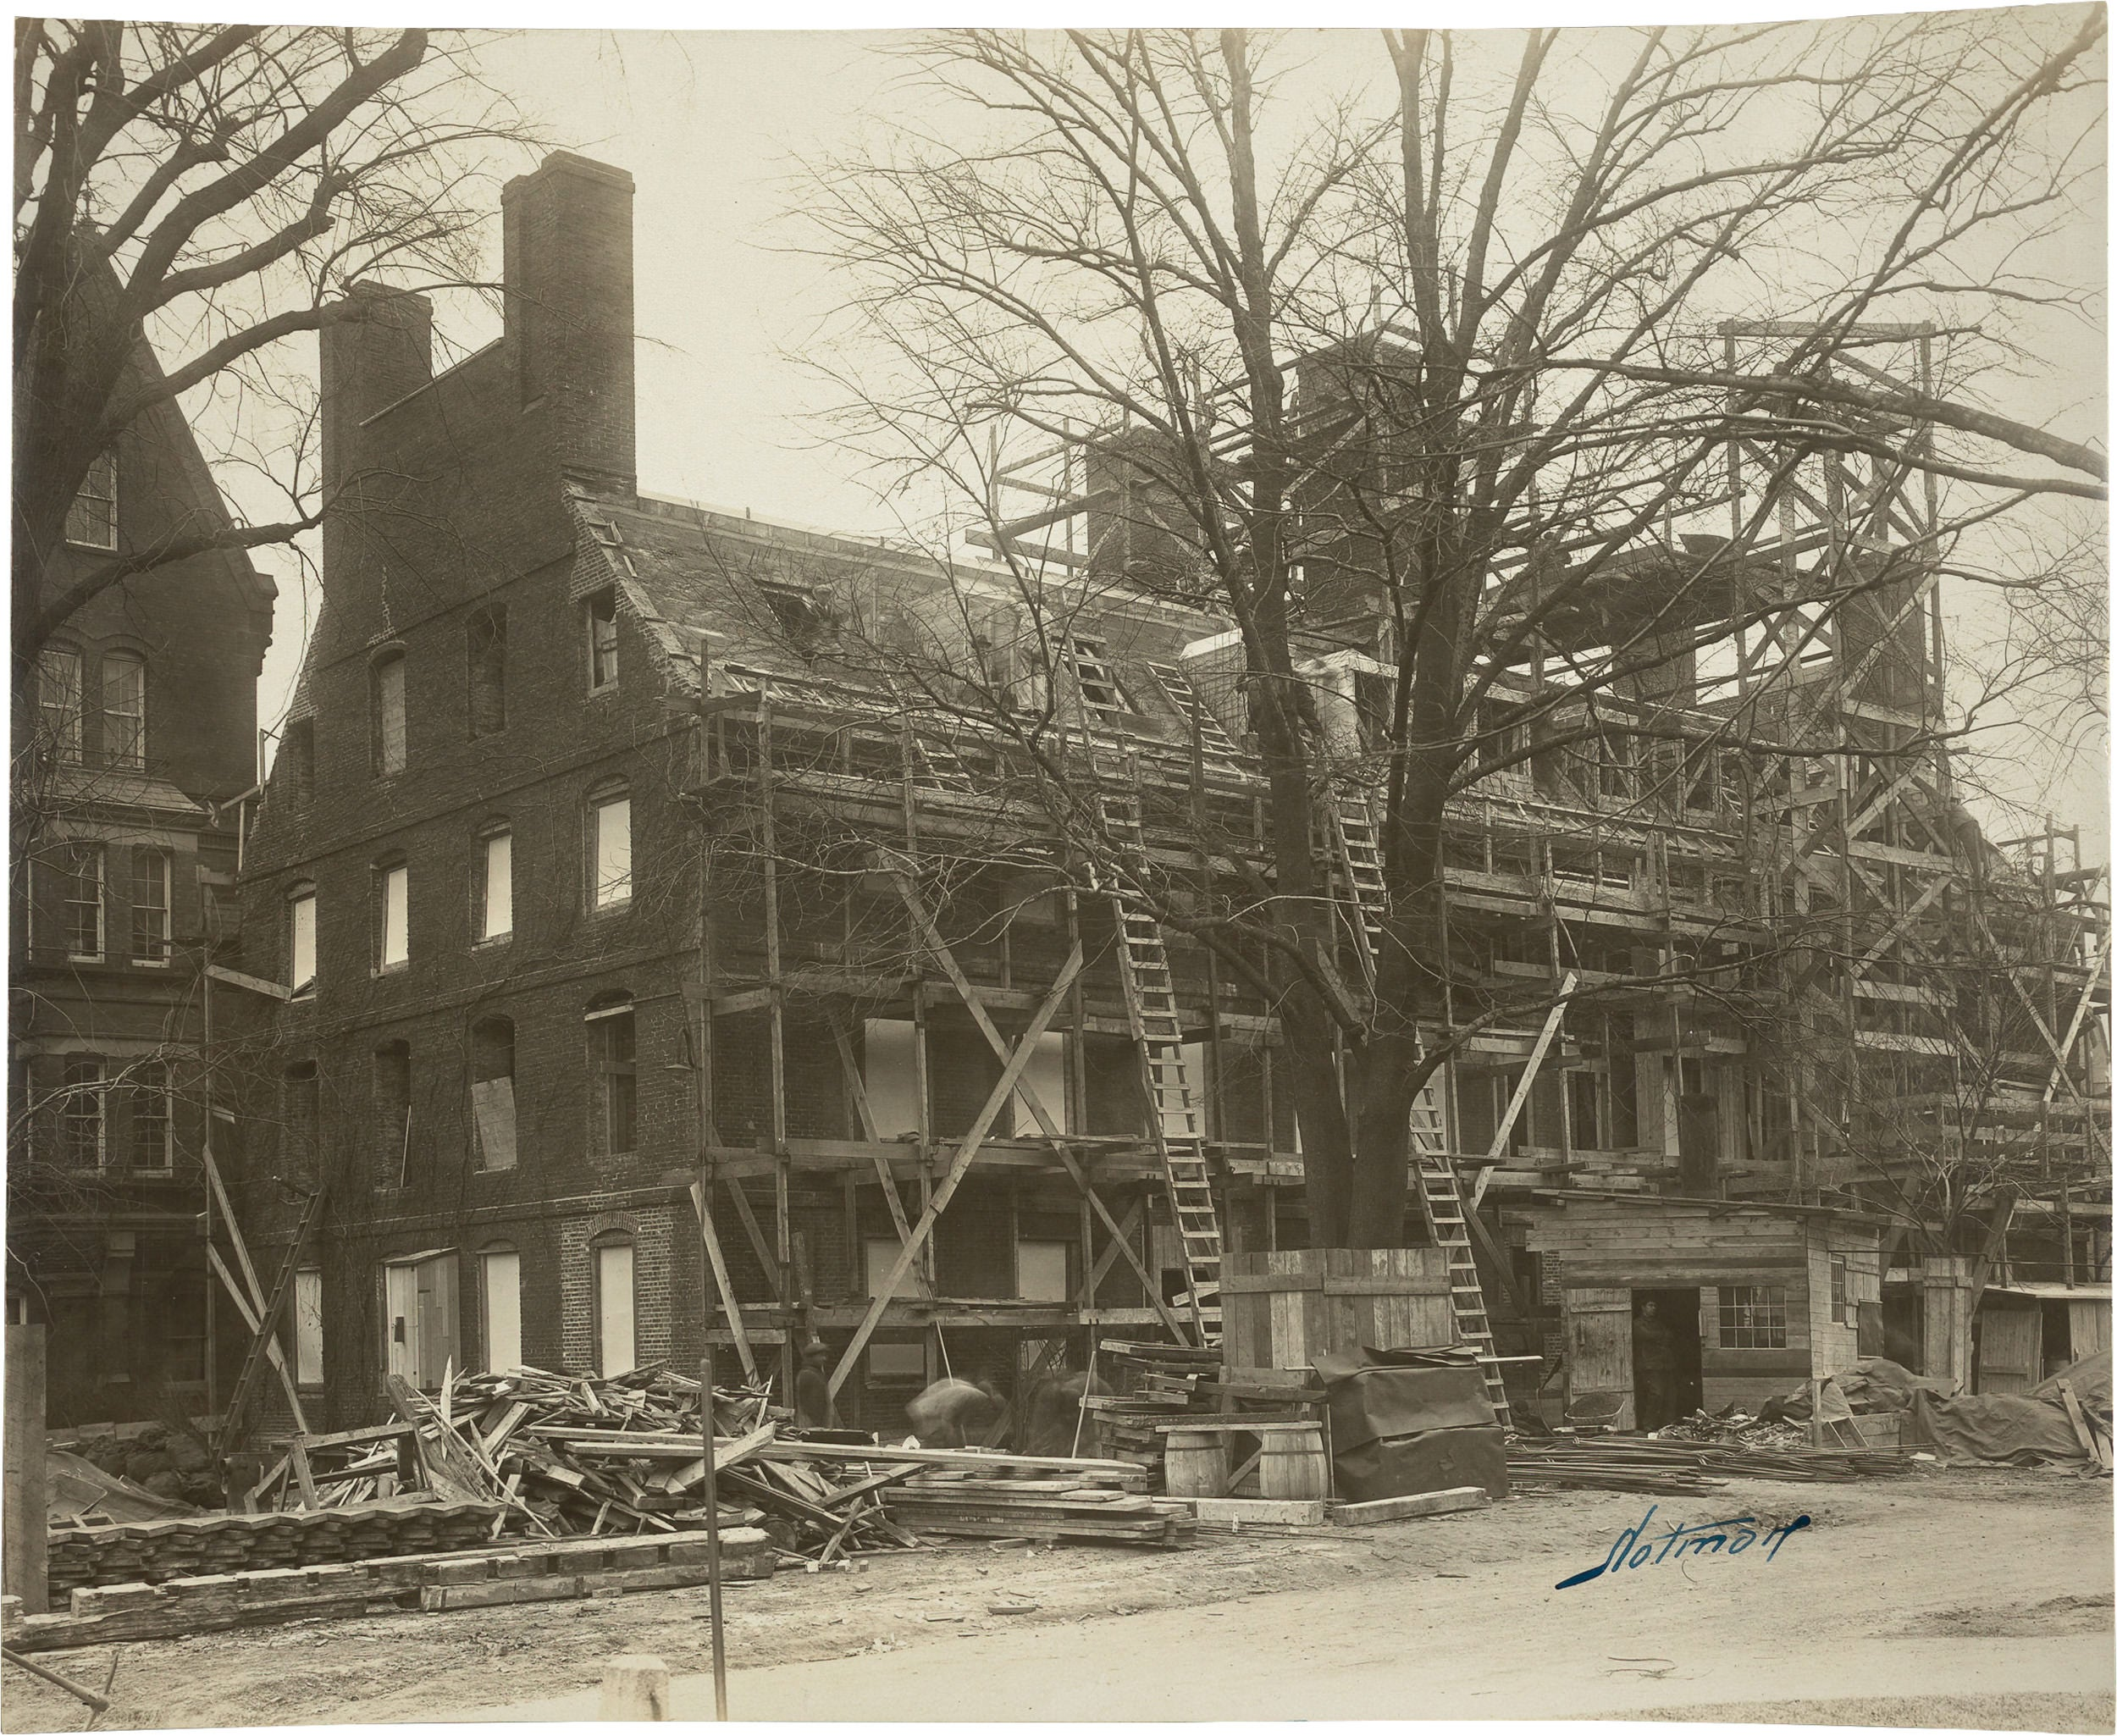 Mass Hall under renovation after 1924 fire.